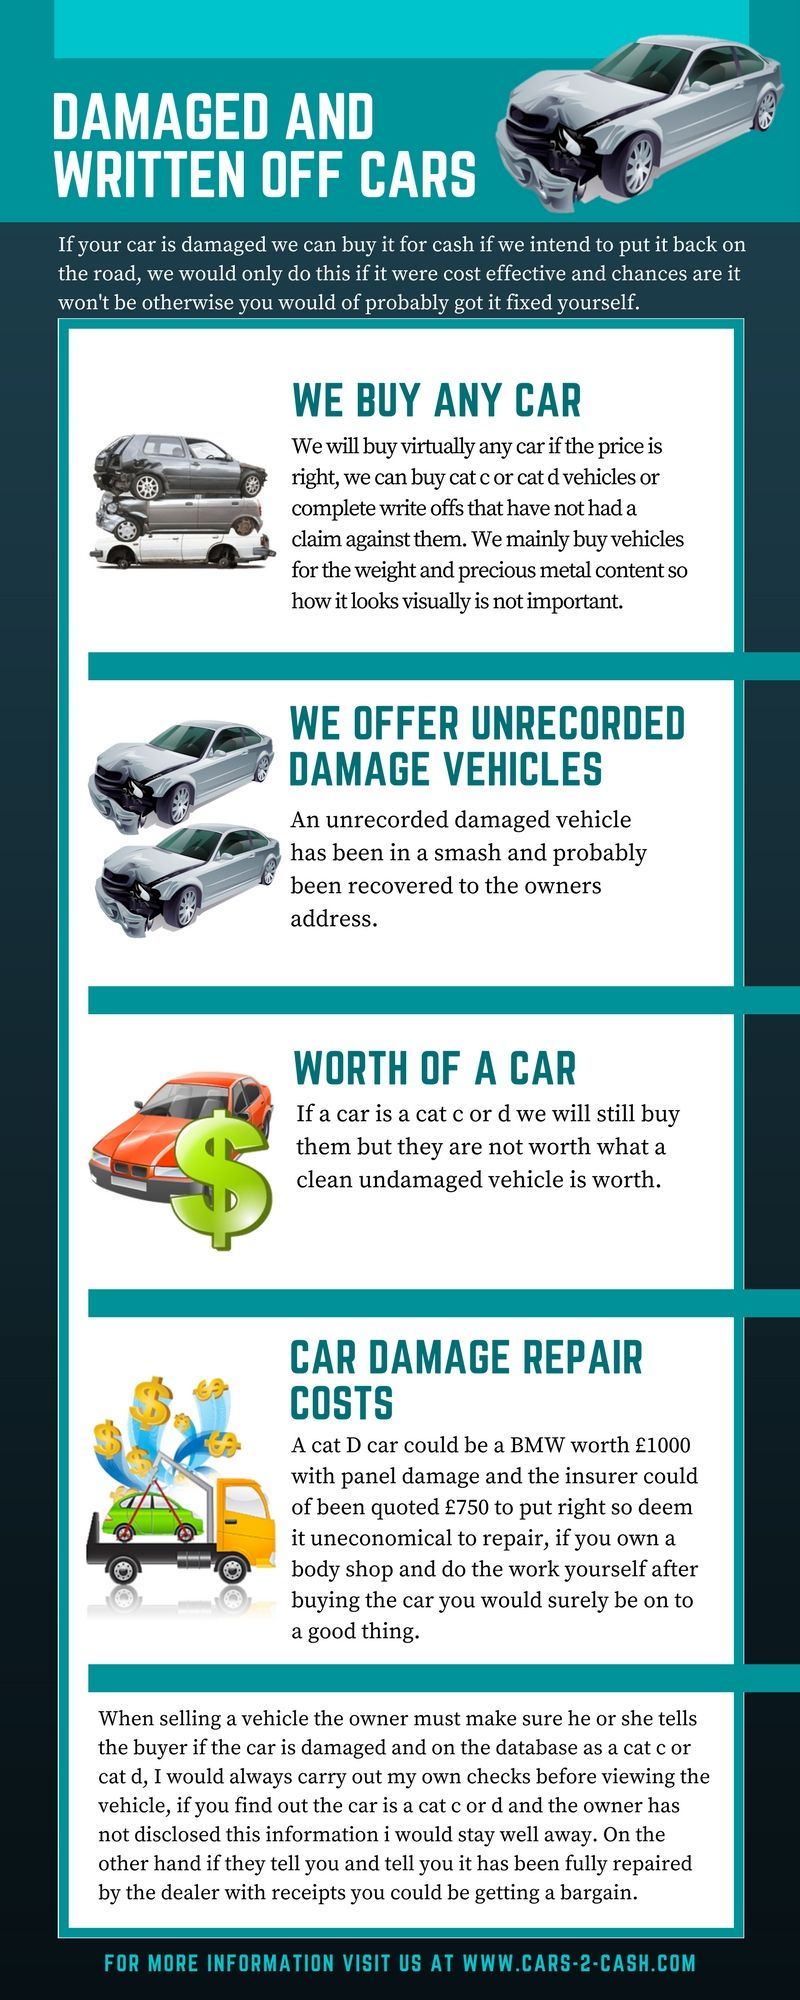 We are often asked if we buy damged or written off cars, we will buy ...